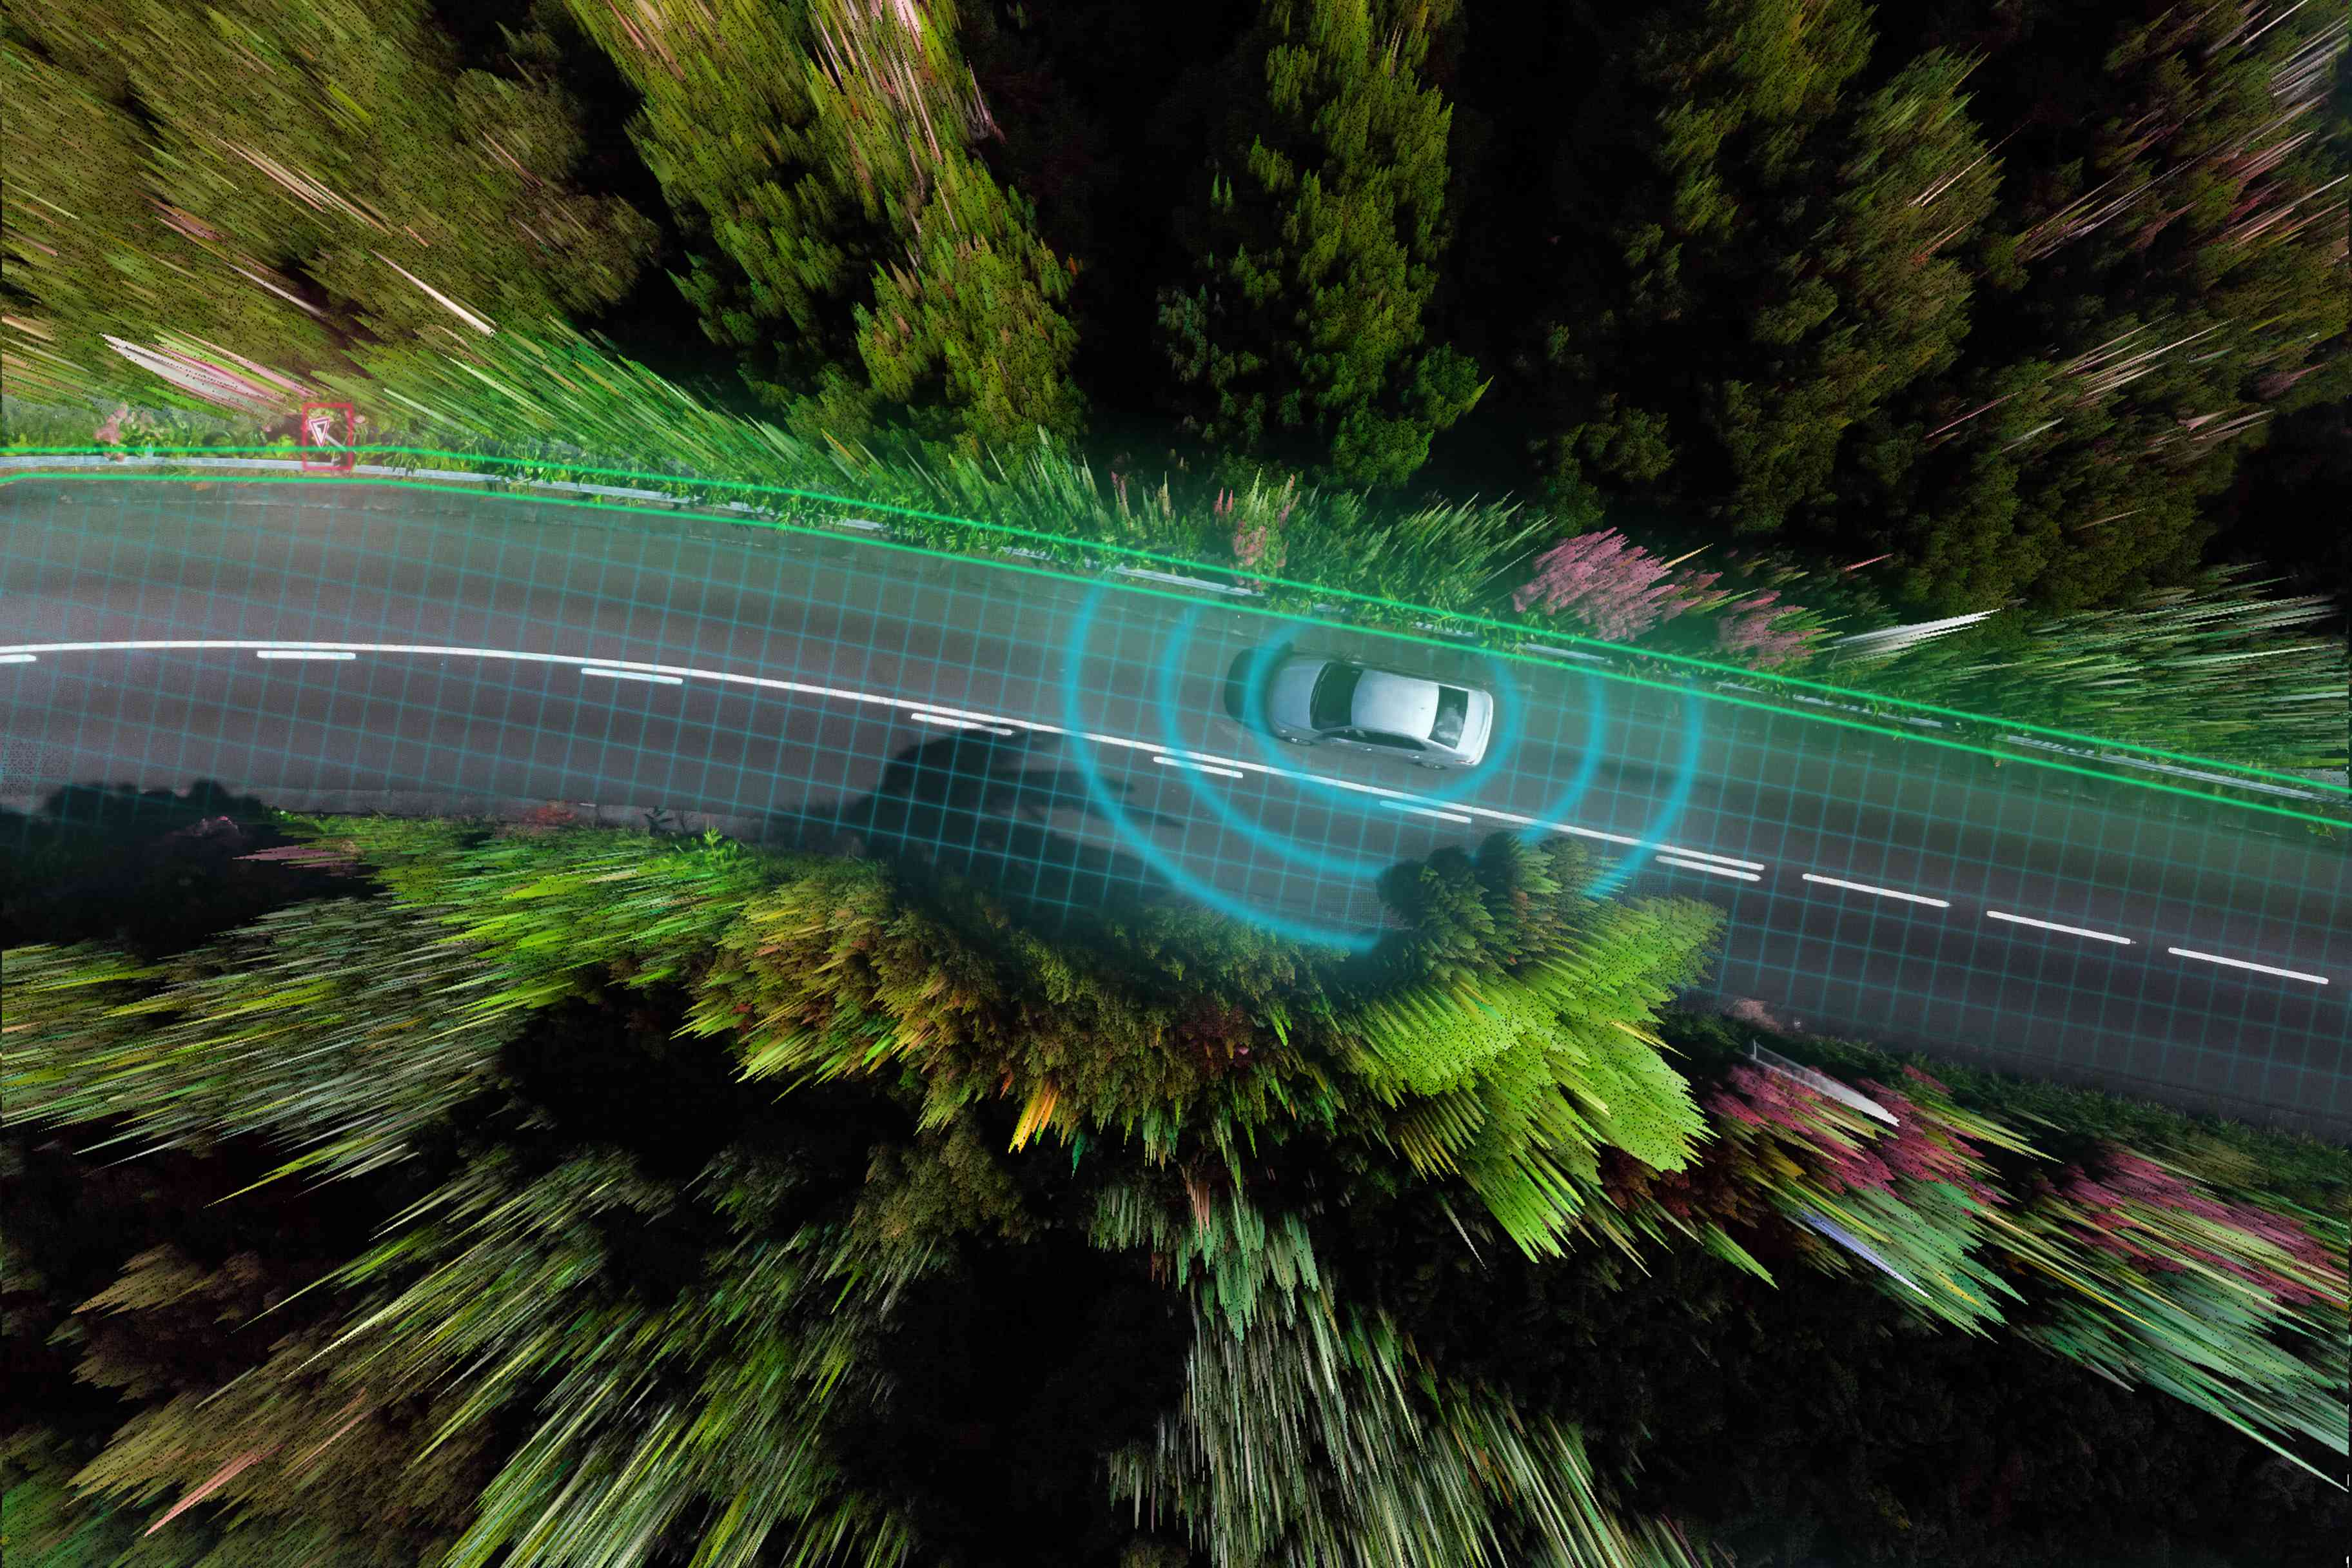 Smart car evaluating the road with sensors and futuristic technology.